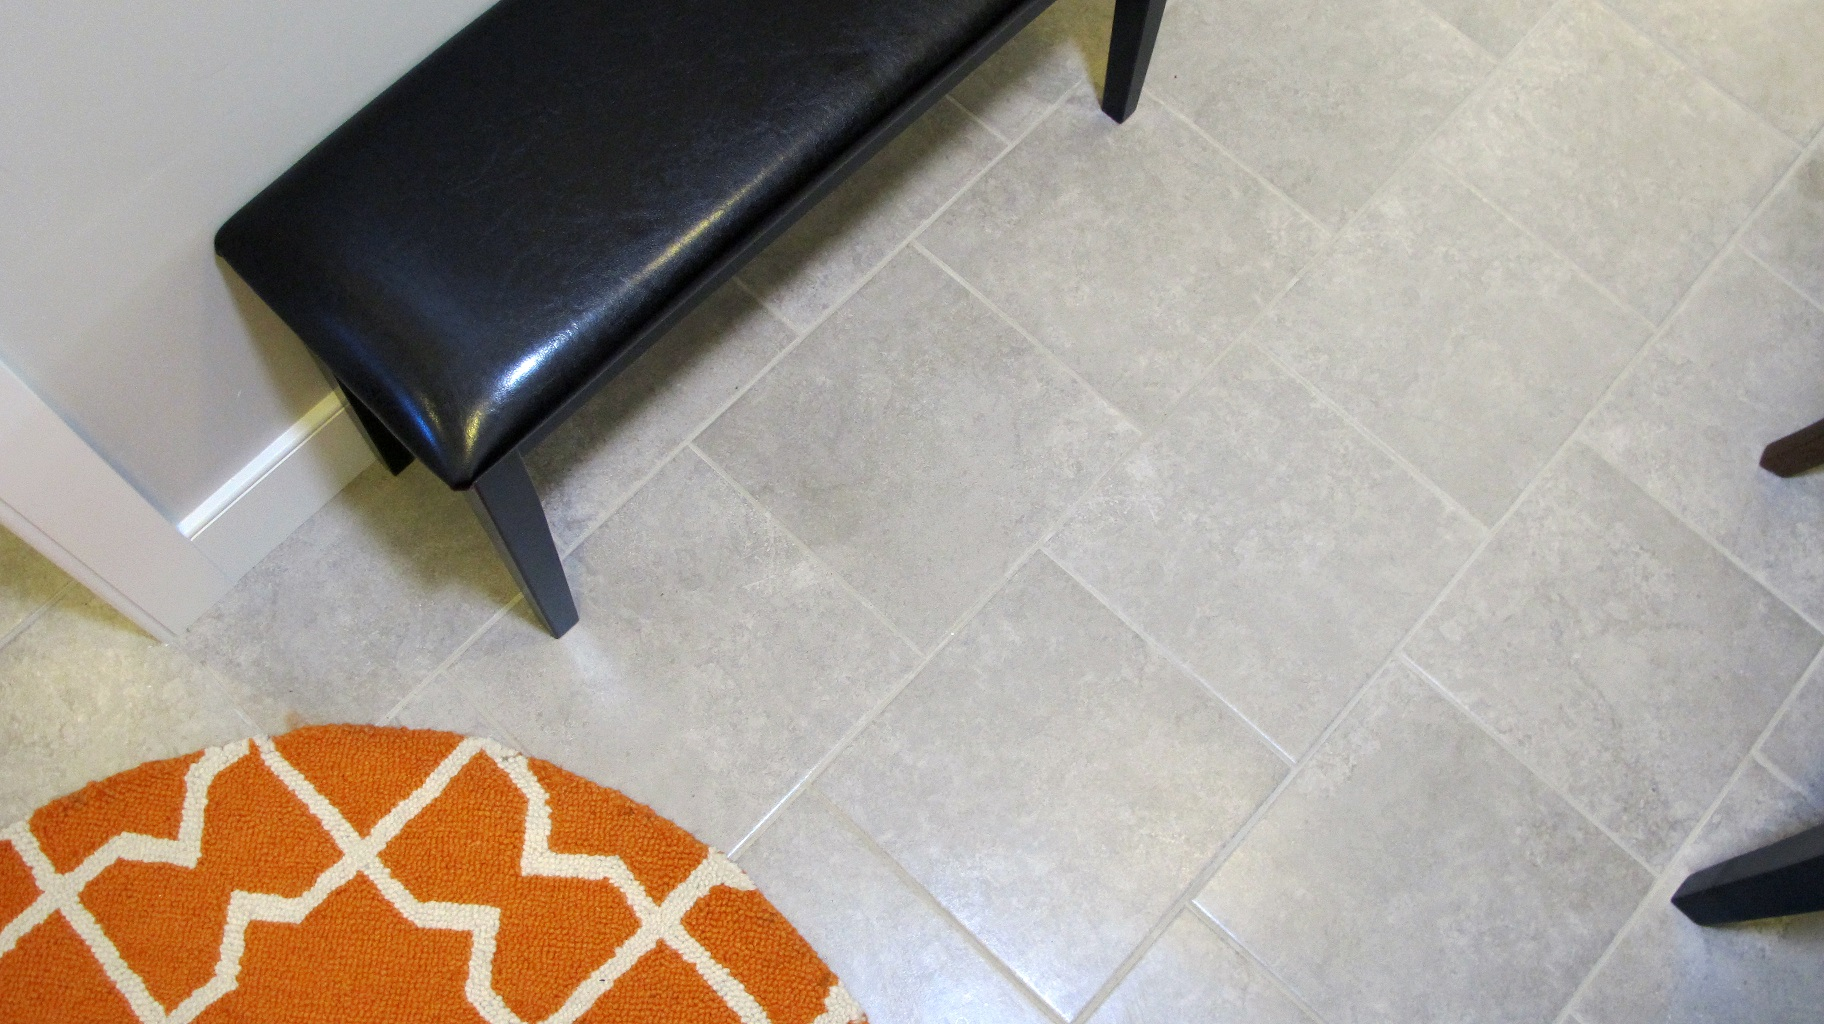 Floor tile Emser Baja 13x13 Tecate porcelain ceramic stagger lay orange decor rug circle black bench gray taupe light contemporary transitional installation